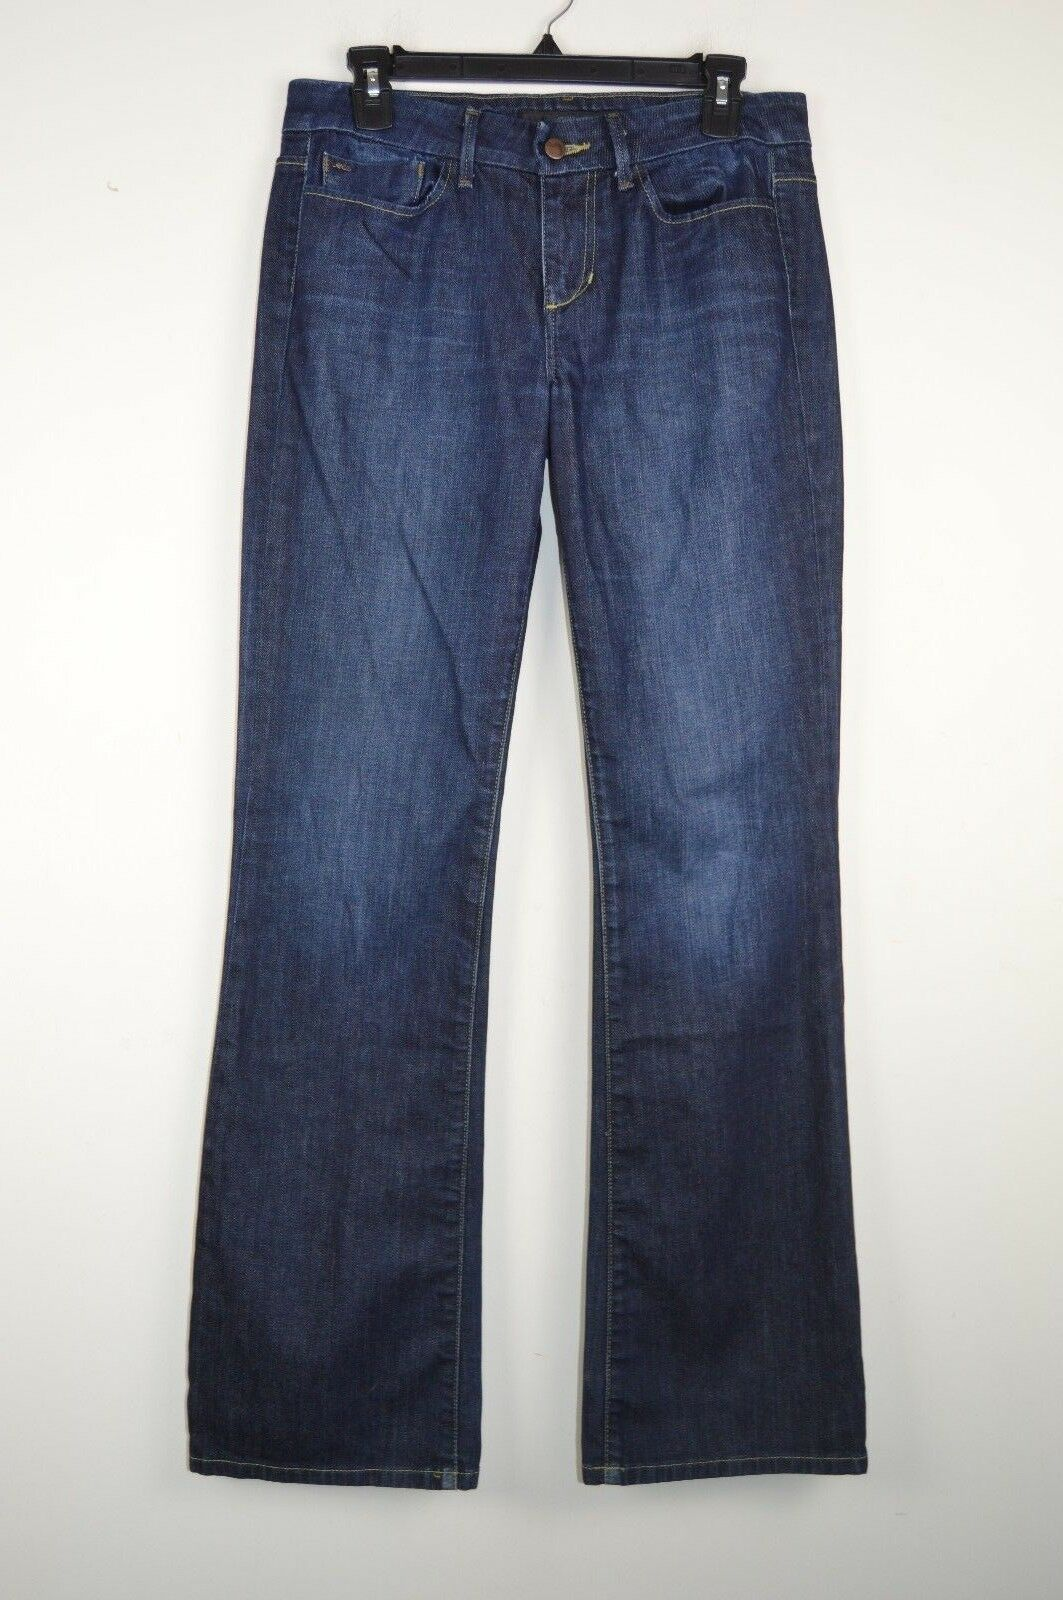 Joes W 28 Womens Jeans Muse in Beatrice Wash 31 X 33 Dark Wash